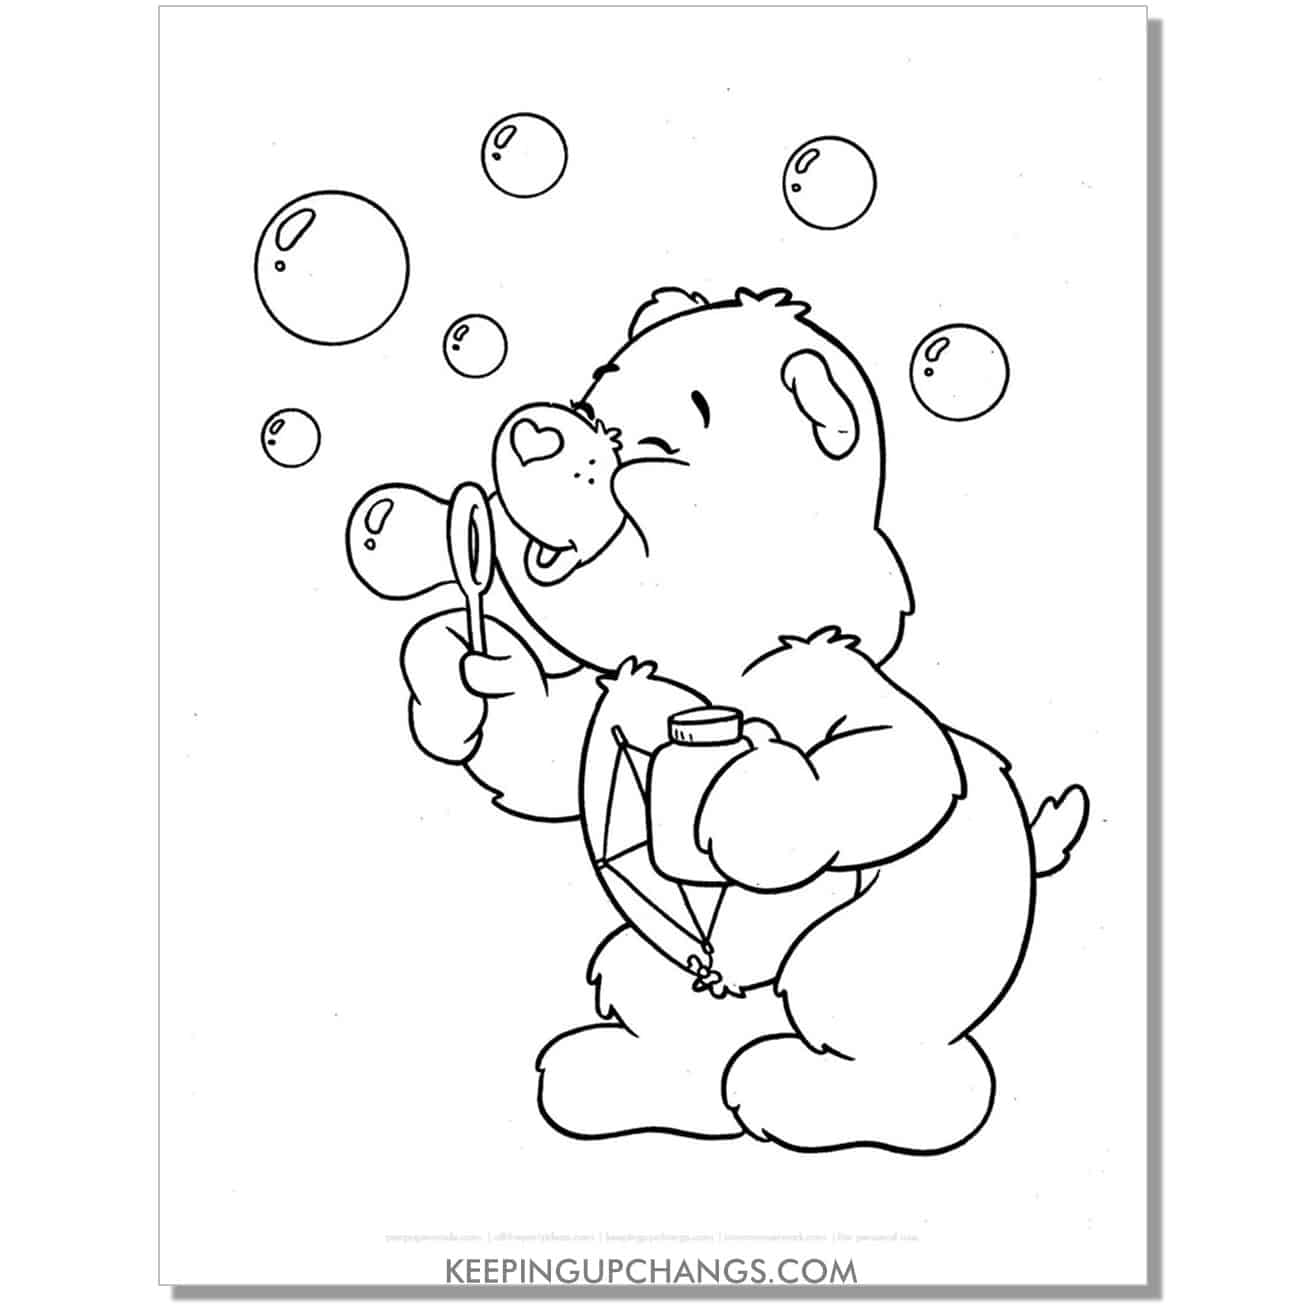 do your best care bear blowing bubbles coloring page.